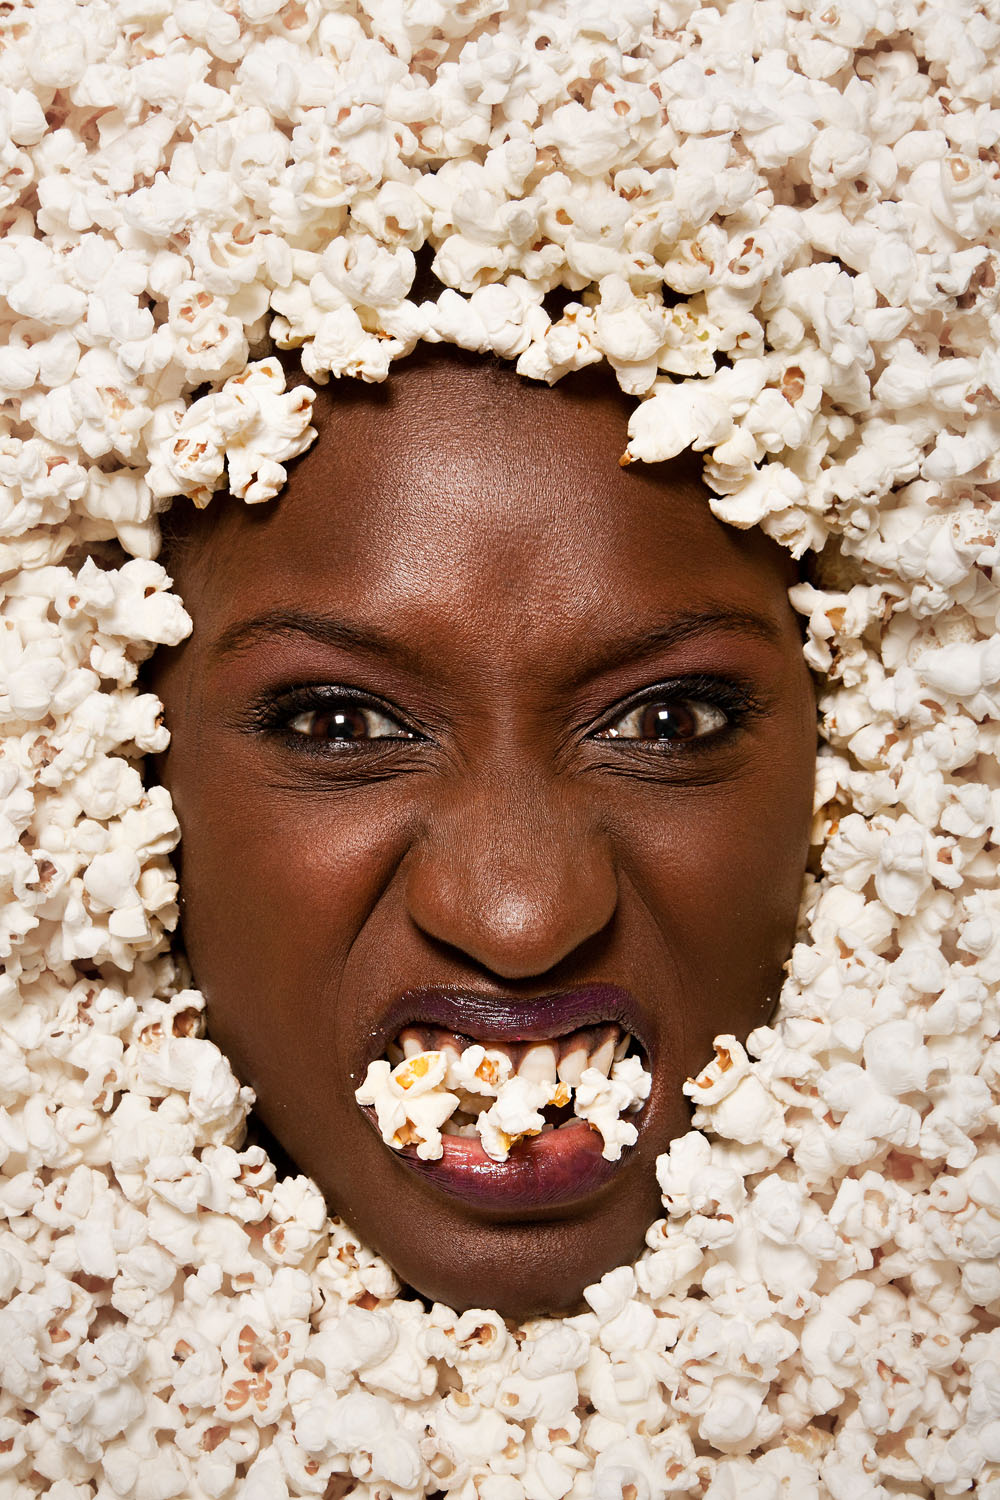 popcorn munch_take 2_desaturate_make-up addition.jpg